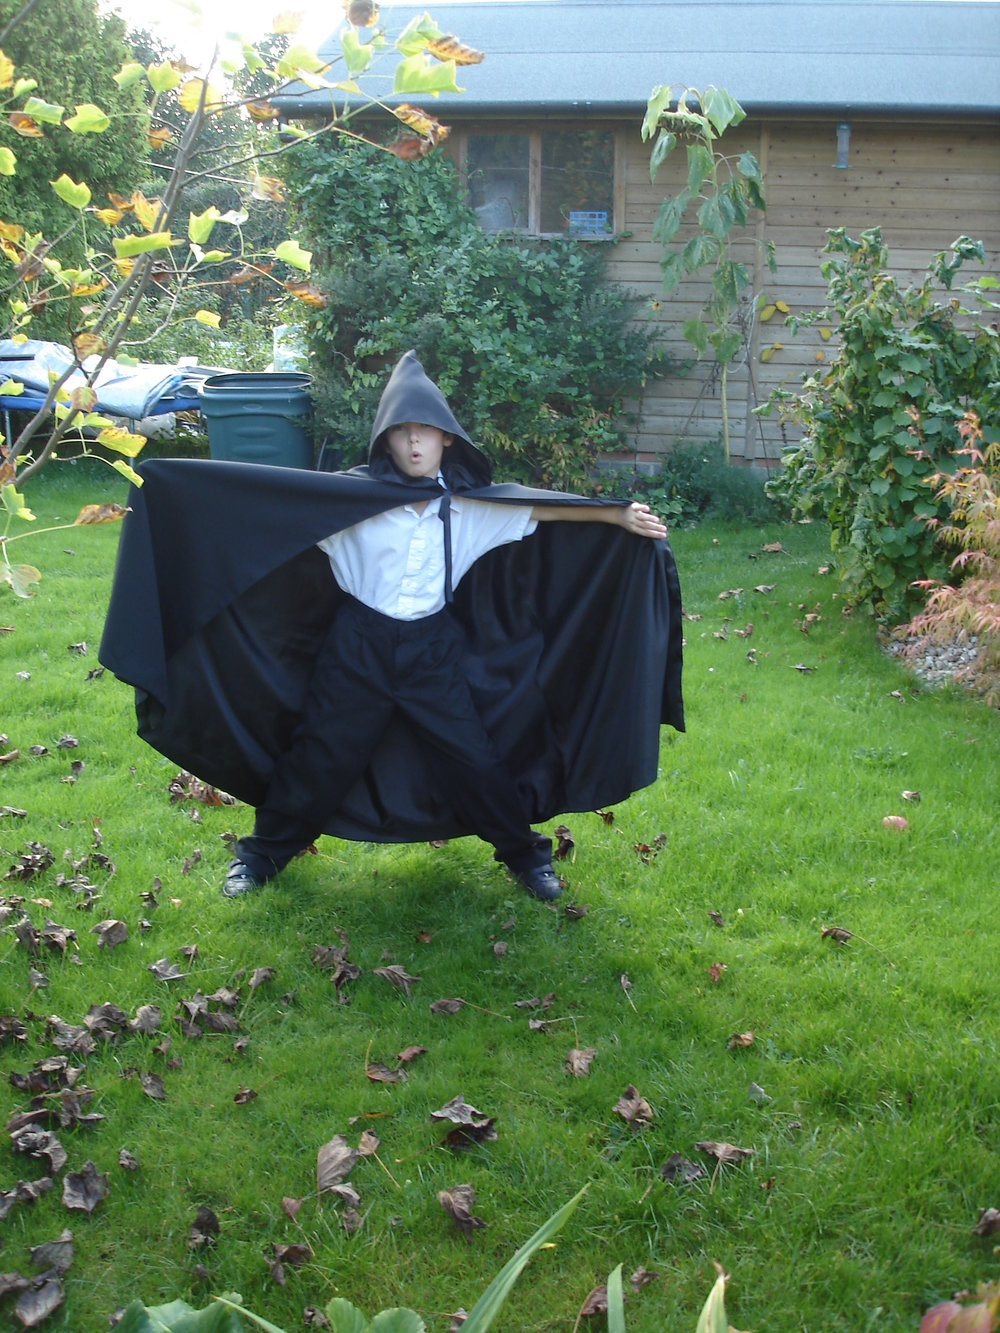 Caroline's youngest son in one of her first cloaks. He's now much older but can still wear the cloak to Halloween parties - it's just a bit shorter now!